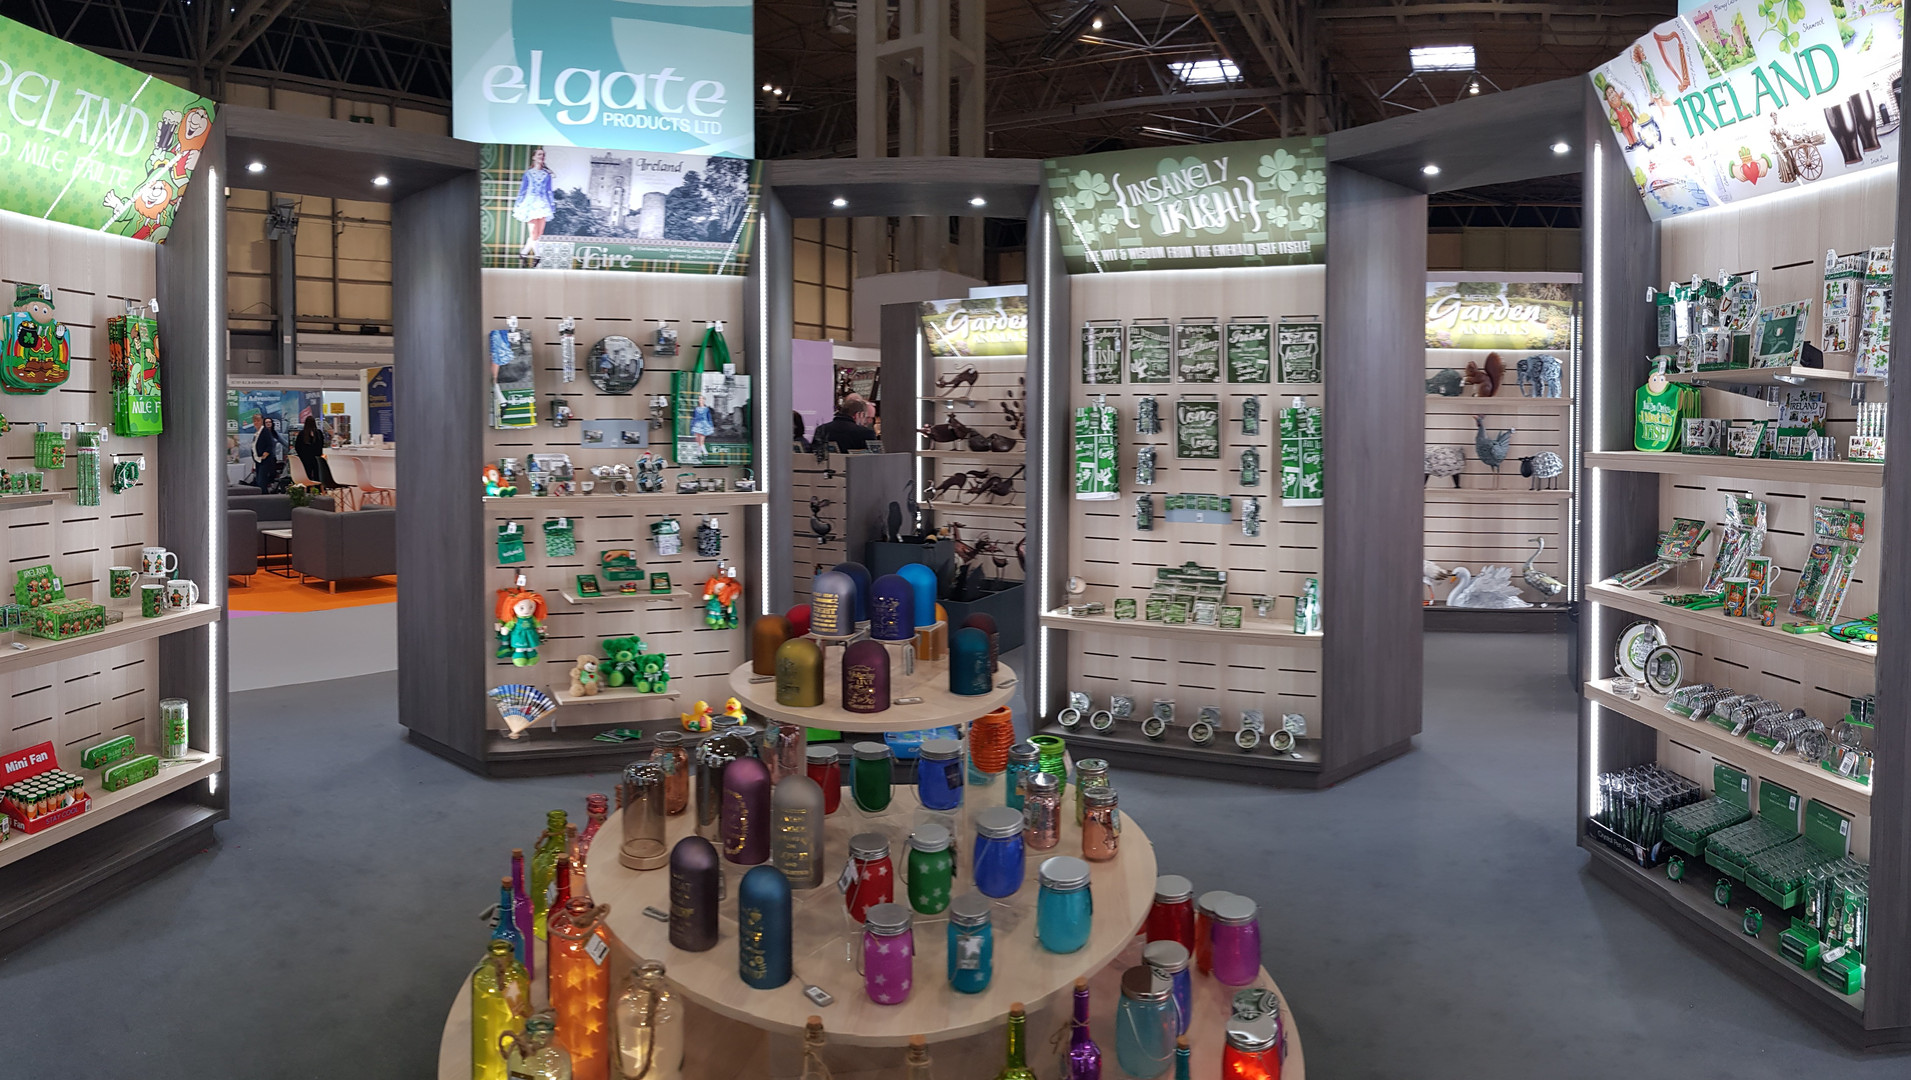 Elgate Exhibition NEC By The New Factory